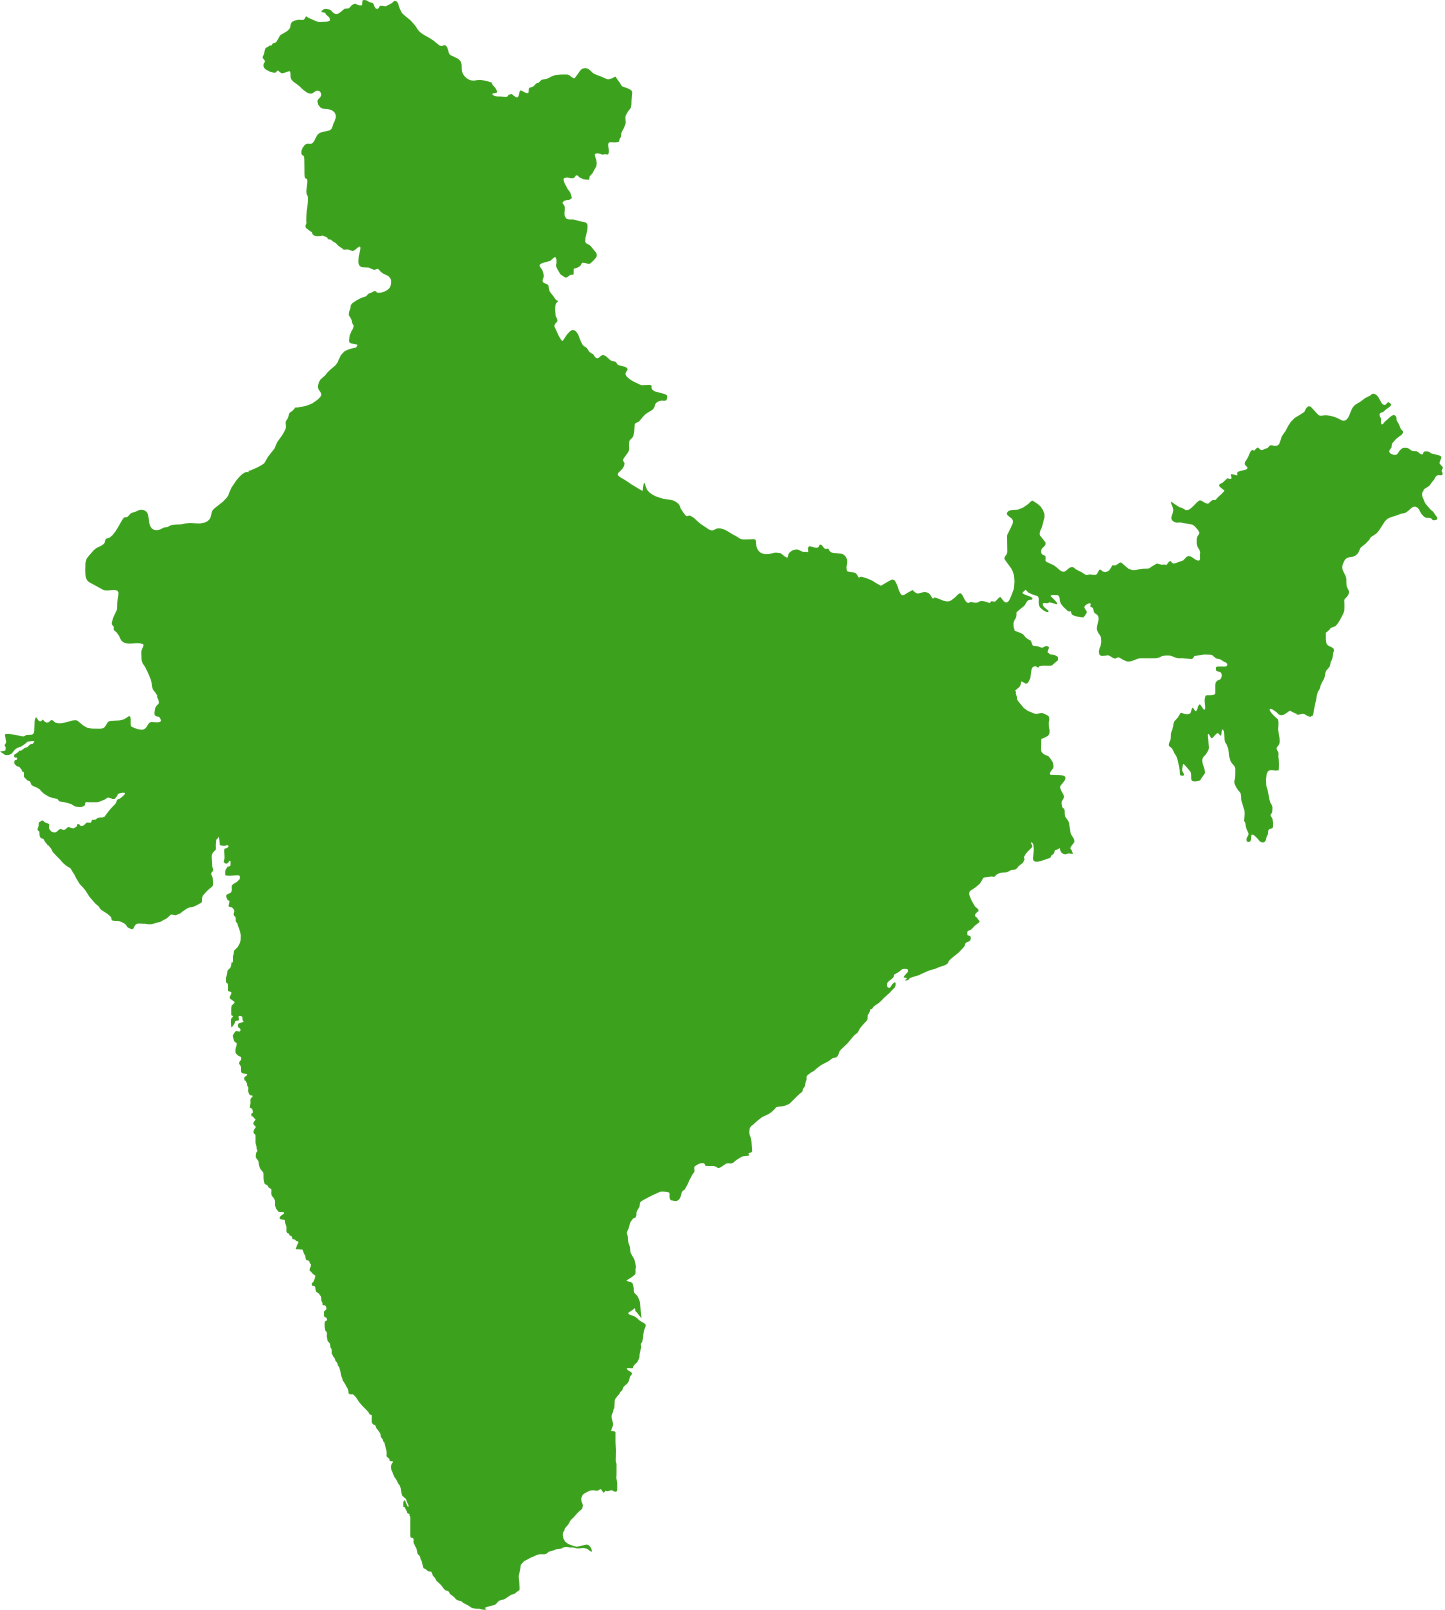 india transparent map